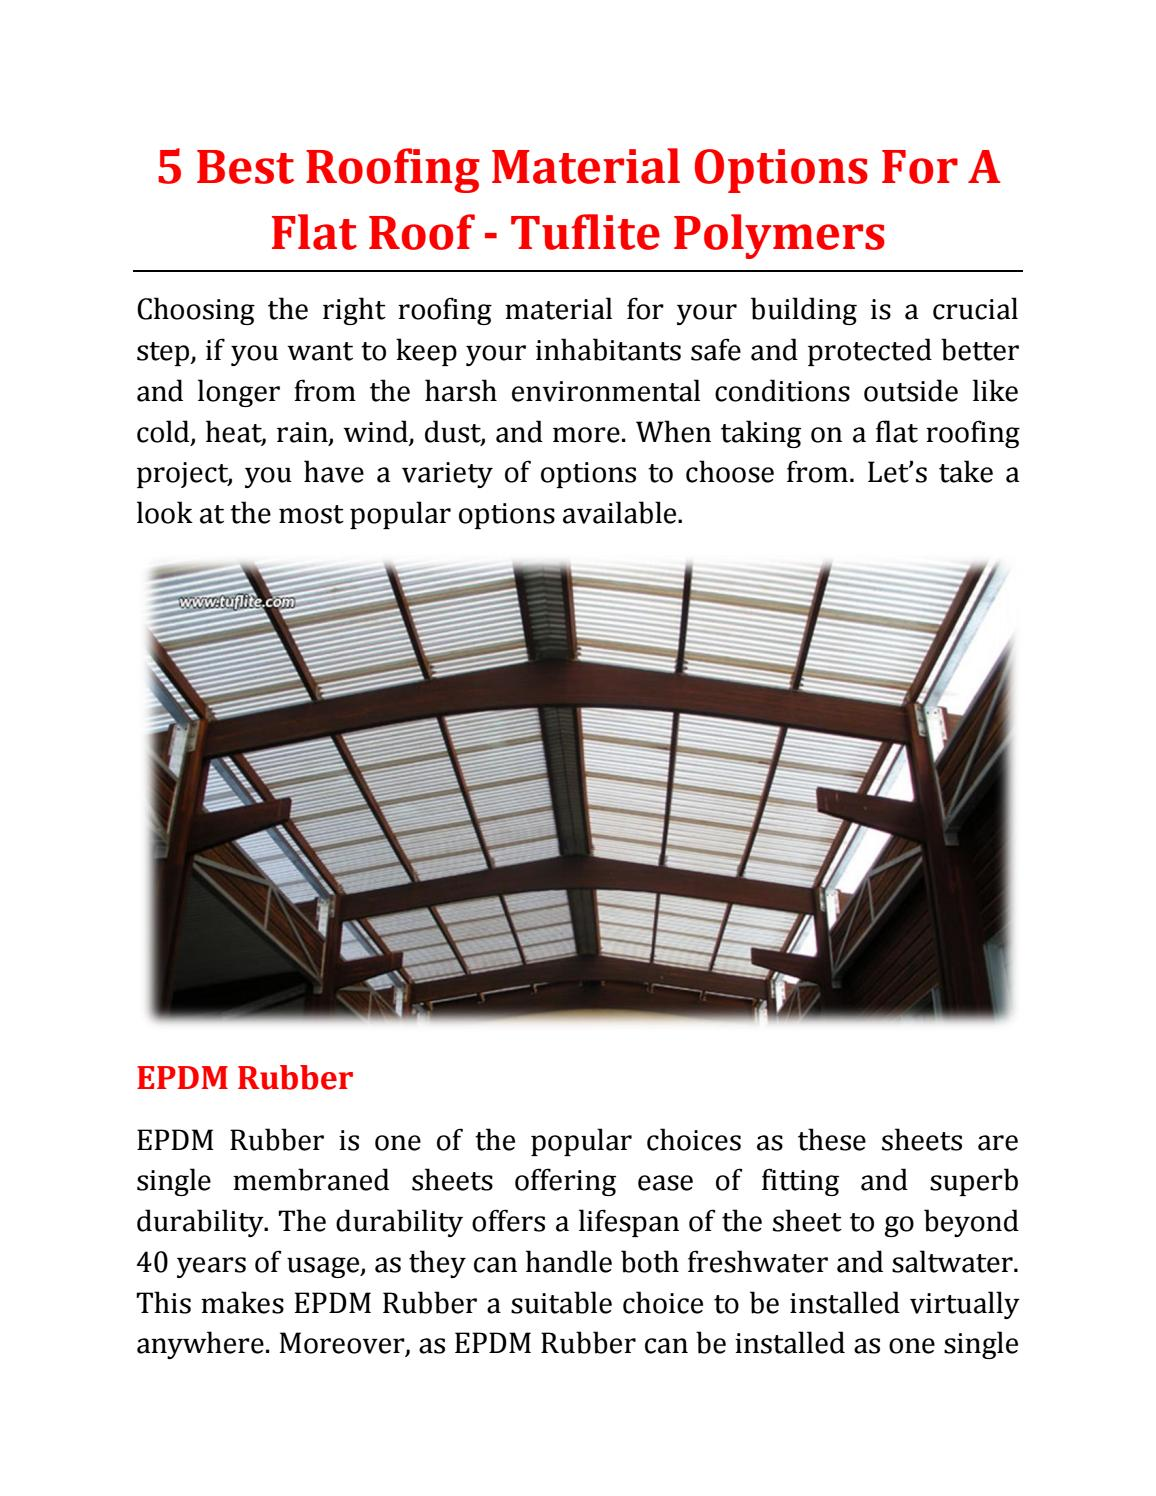 5 Best Roofing Material Options For A Flat Roof Tuflite Polymers By Tuflite Polymers Issuu